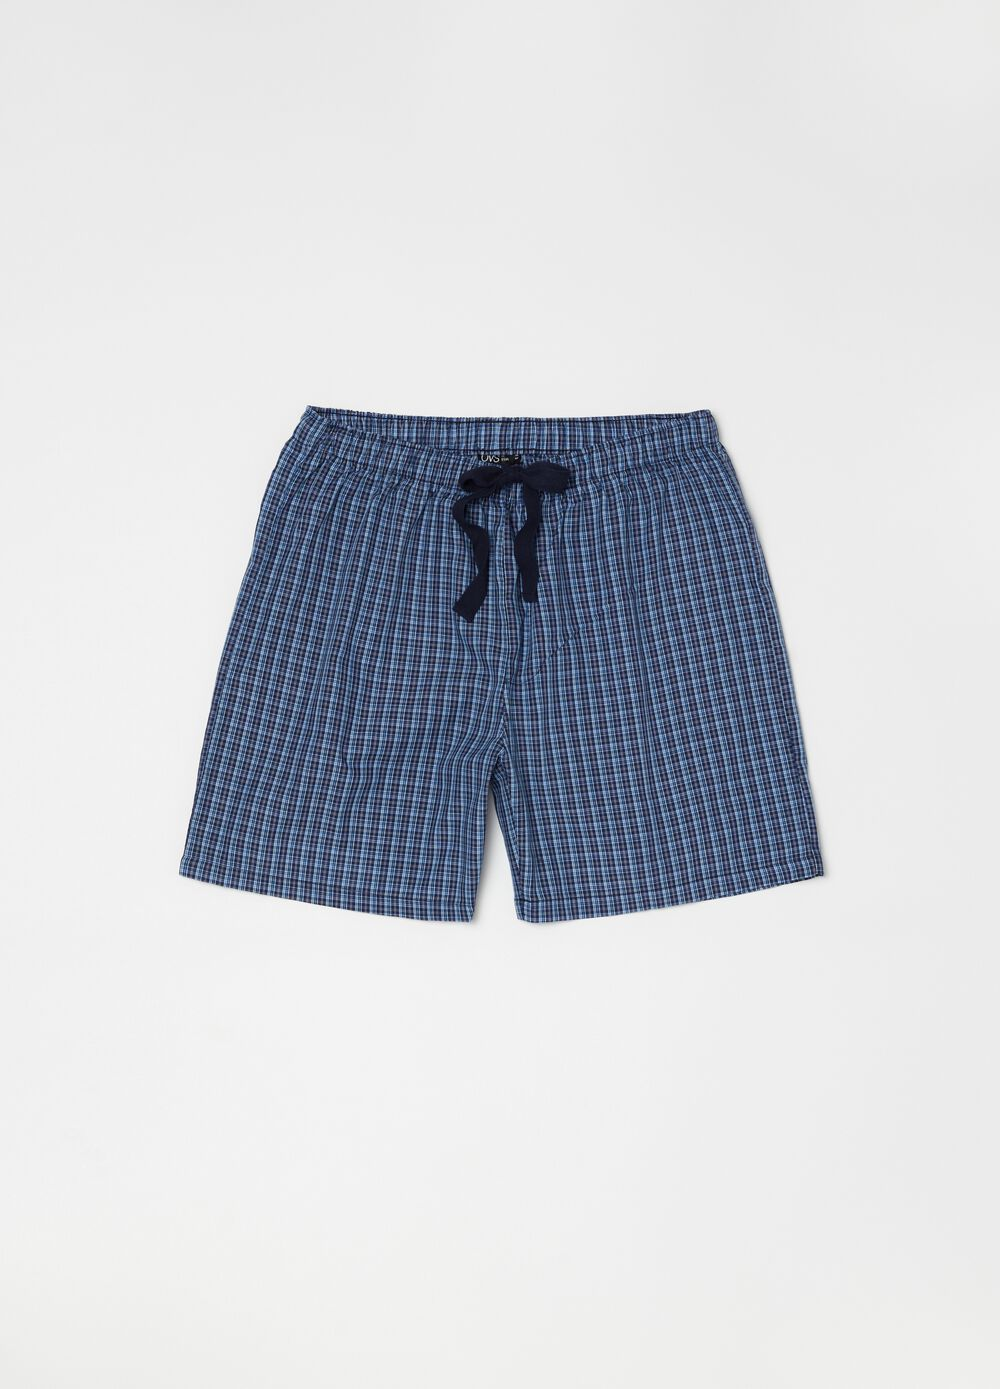 Patterned pyjama shorts with pocket